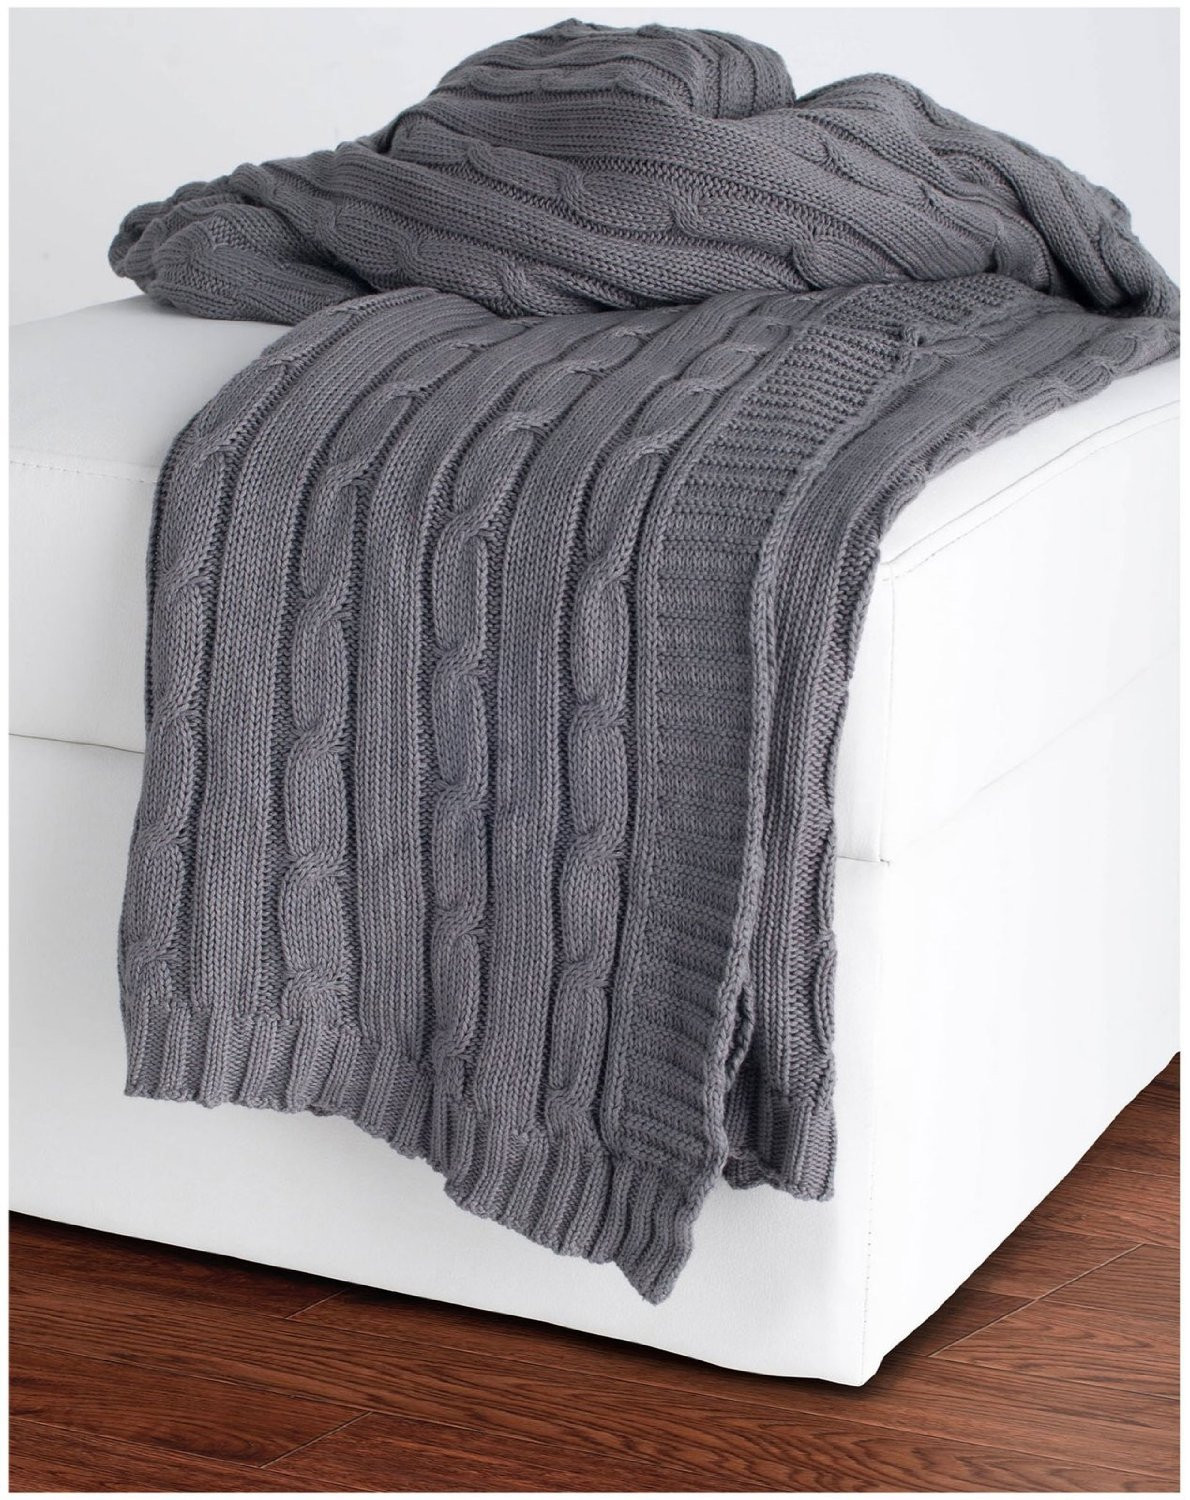 Awesome Amazon Rizzy Home Cable Knit Sweater Fabric Throw Cable Knit Sweater Blanket Of Incredible 50 Photos Cable Knit Sweater Blanket